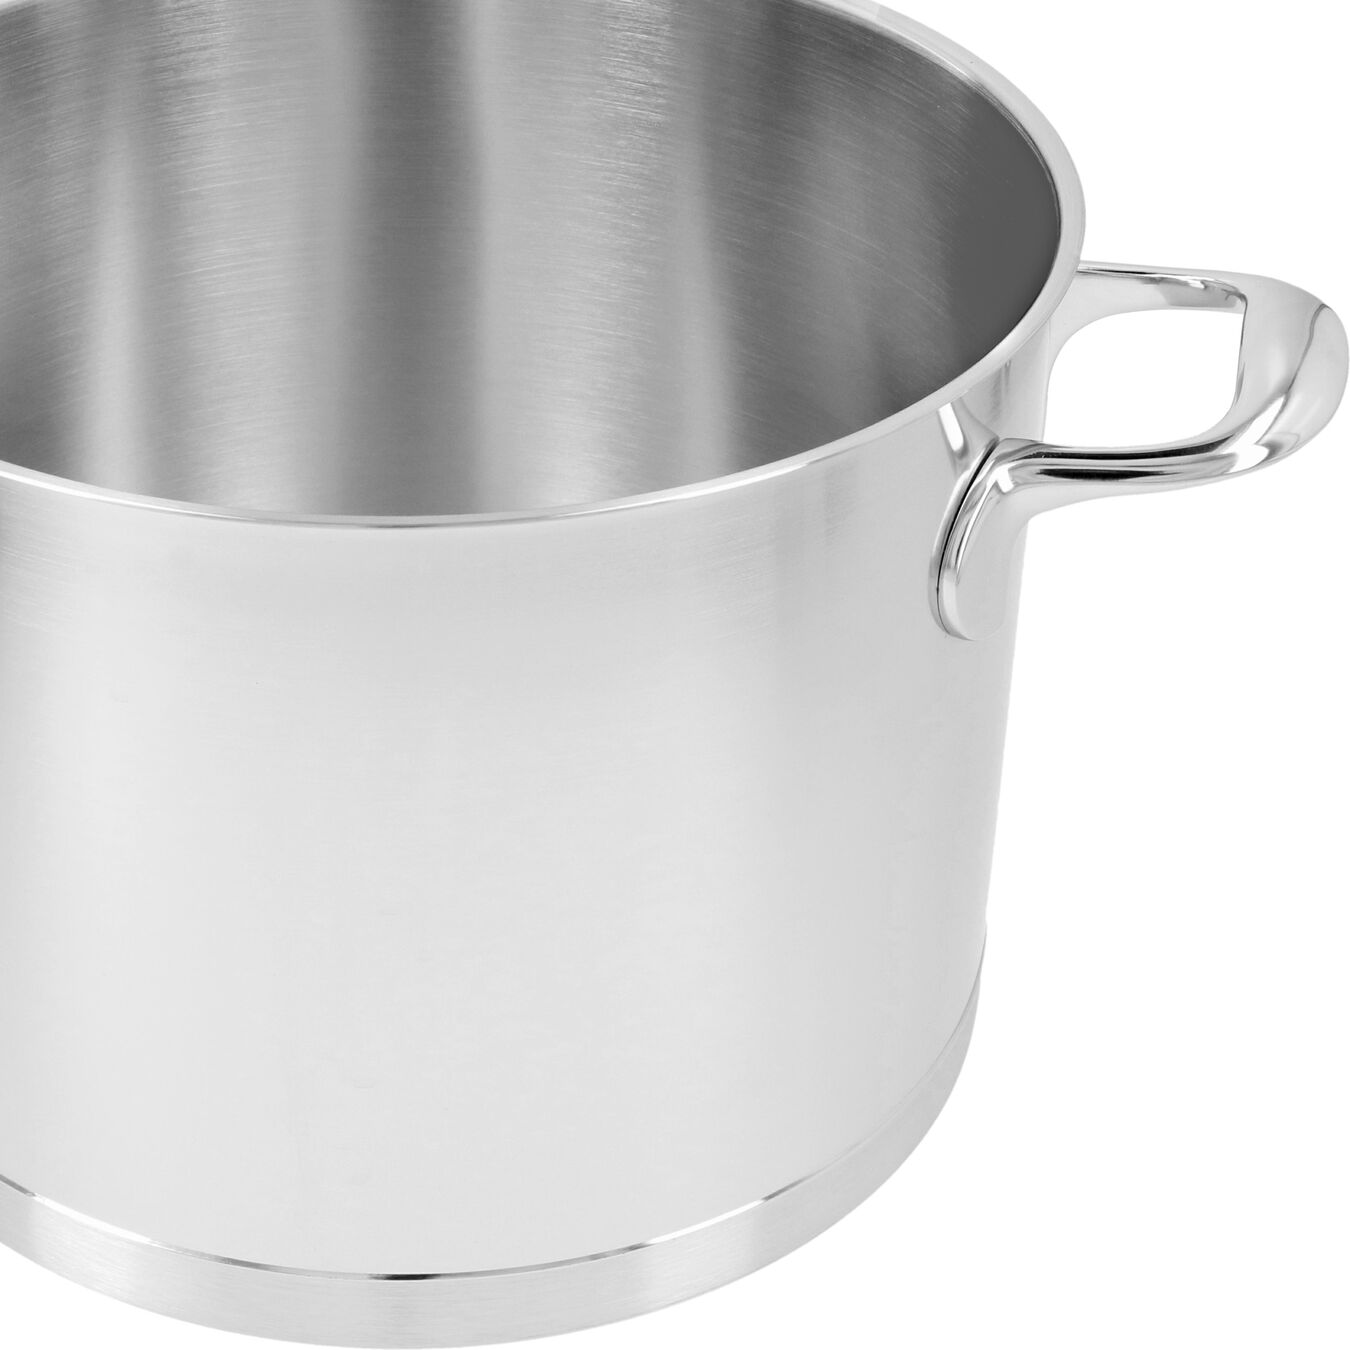 8.5 qt Stock pot with lid, 18/10 Stainless Steel ,,large 4